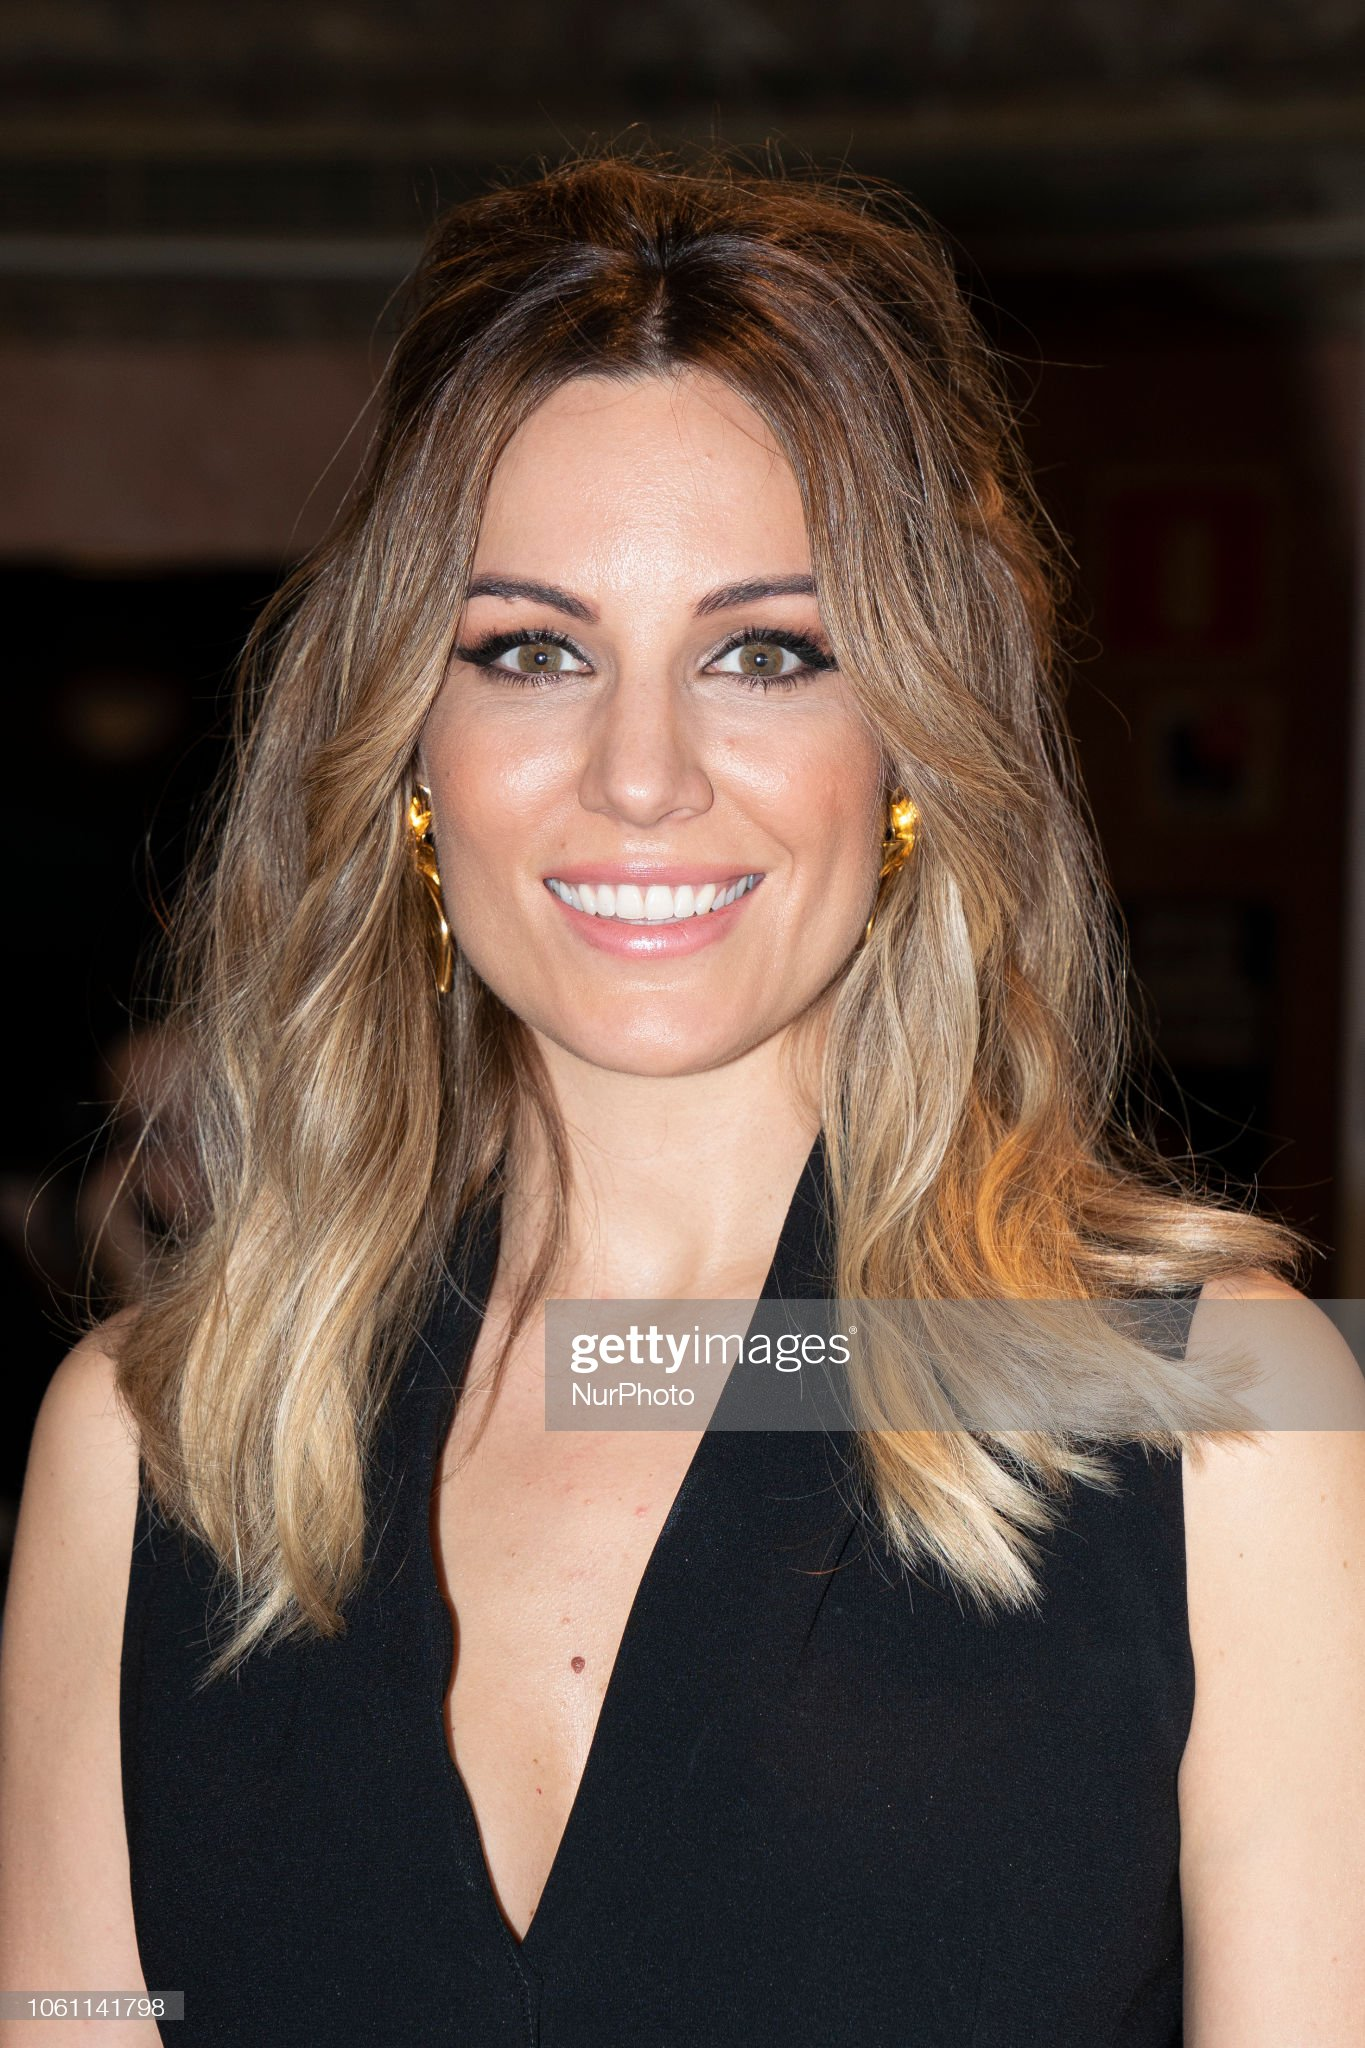 COLOR DE OJOS (clasificación y debate de personas famosas) Singer-singer-edurne-attends-the-presentation-of-historias-de-by-in-picture-id1061141798?s=2048x2048